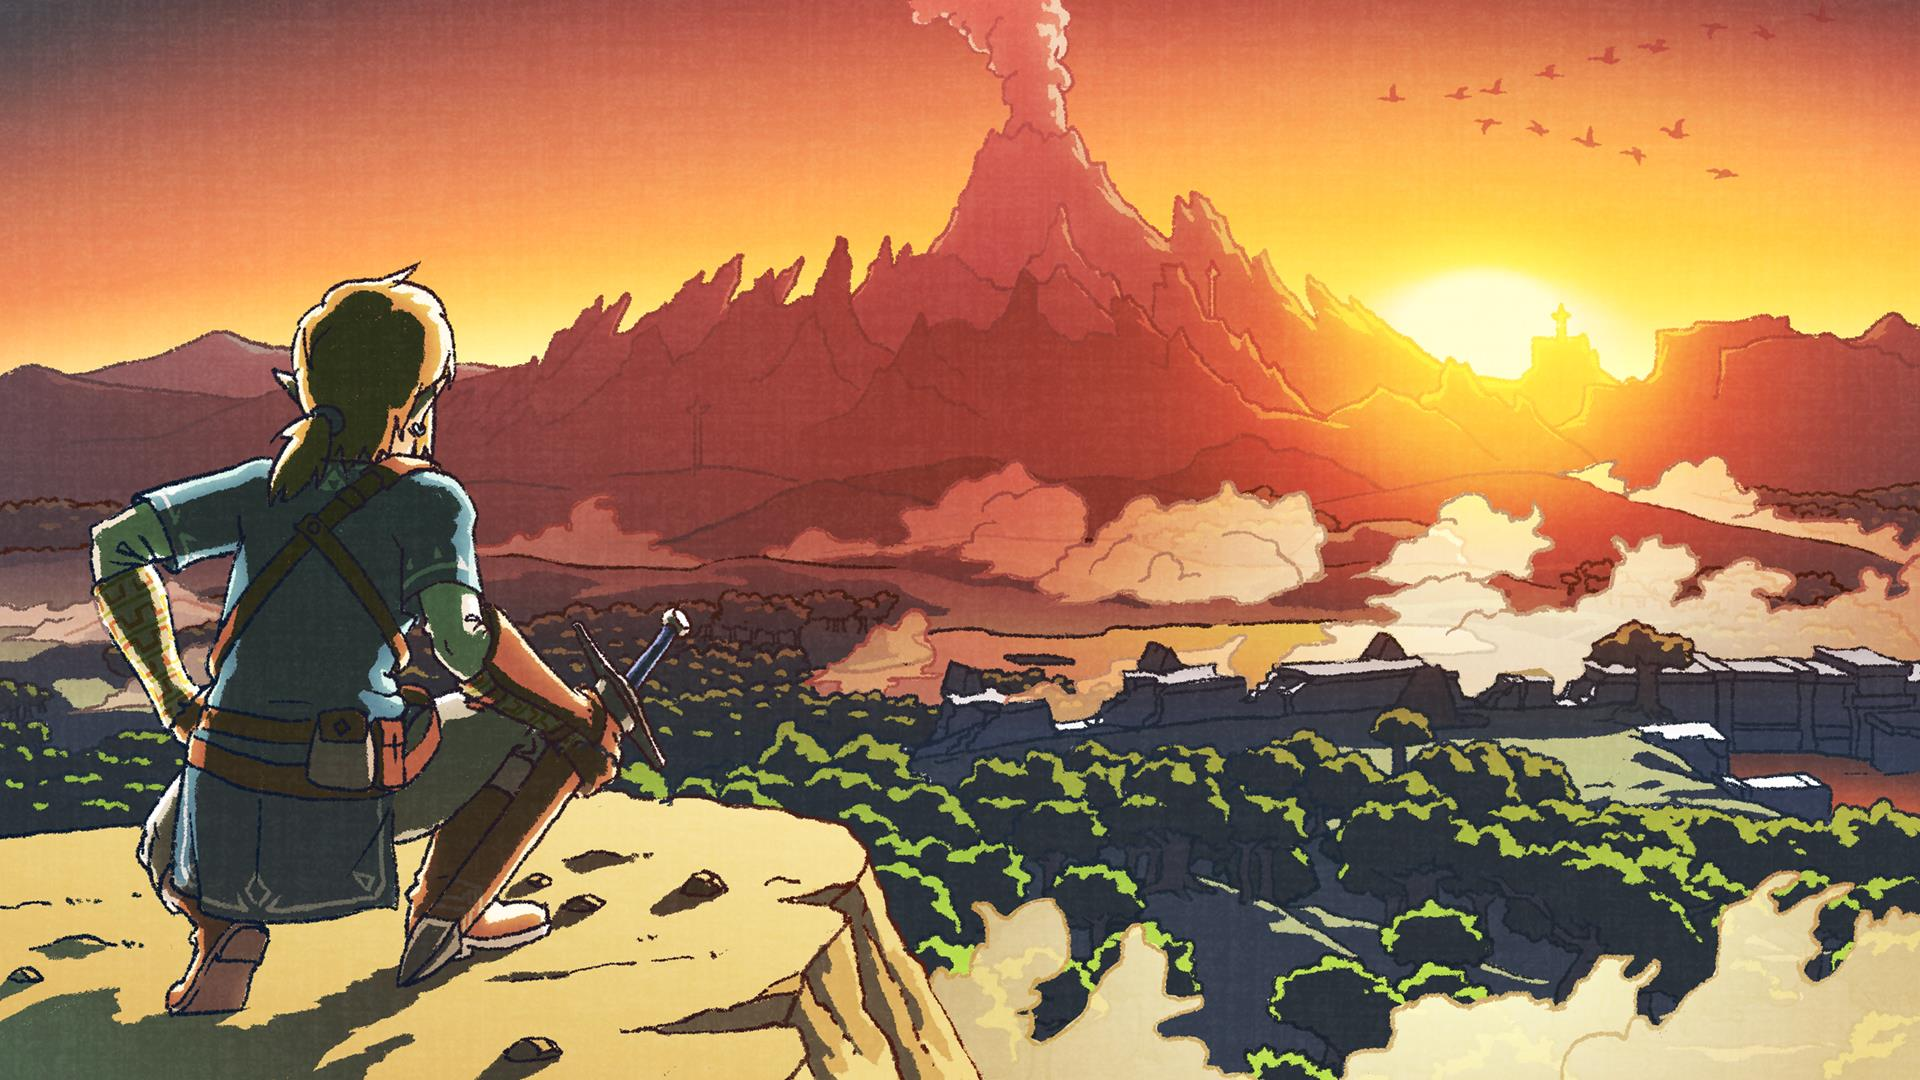 New Concept Art For The Legend Of Zelda Breath Of The Wild